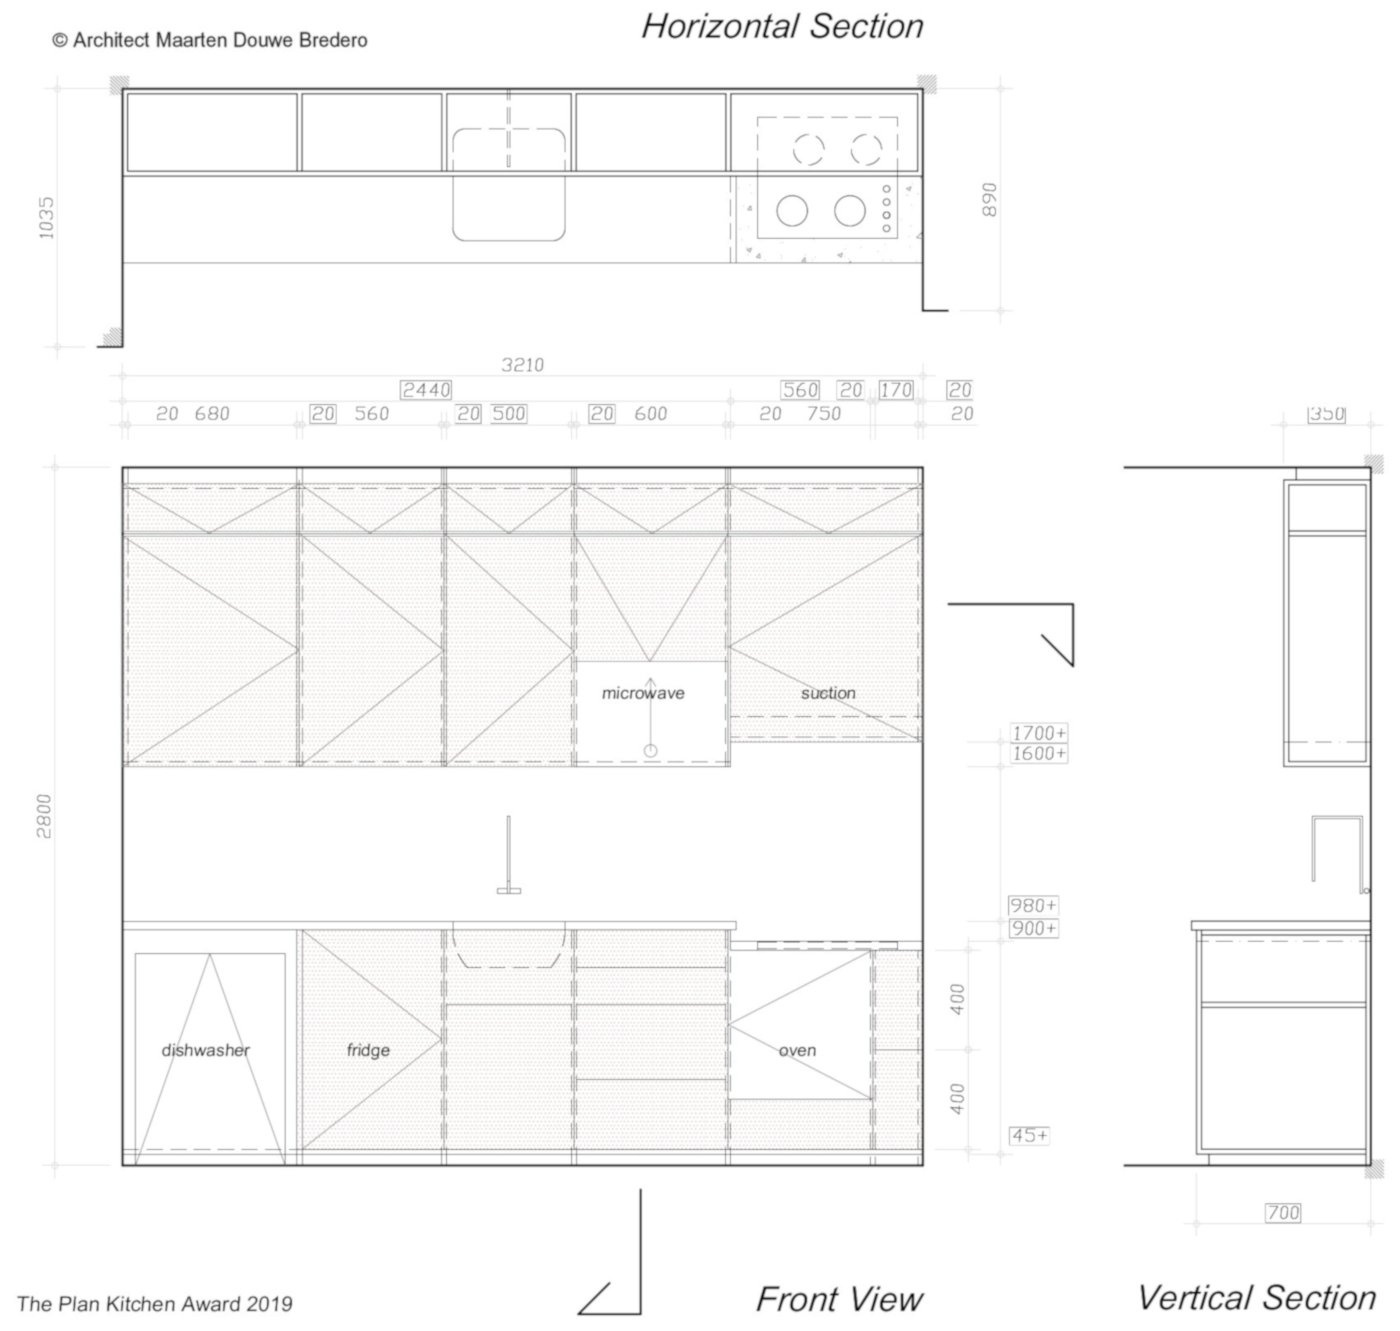 technical-drawing-note-proportion1to2-for cupboards M.D. Bredero